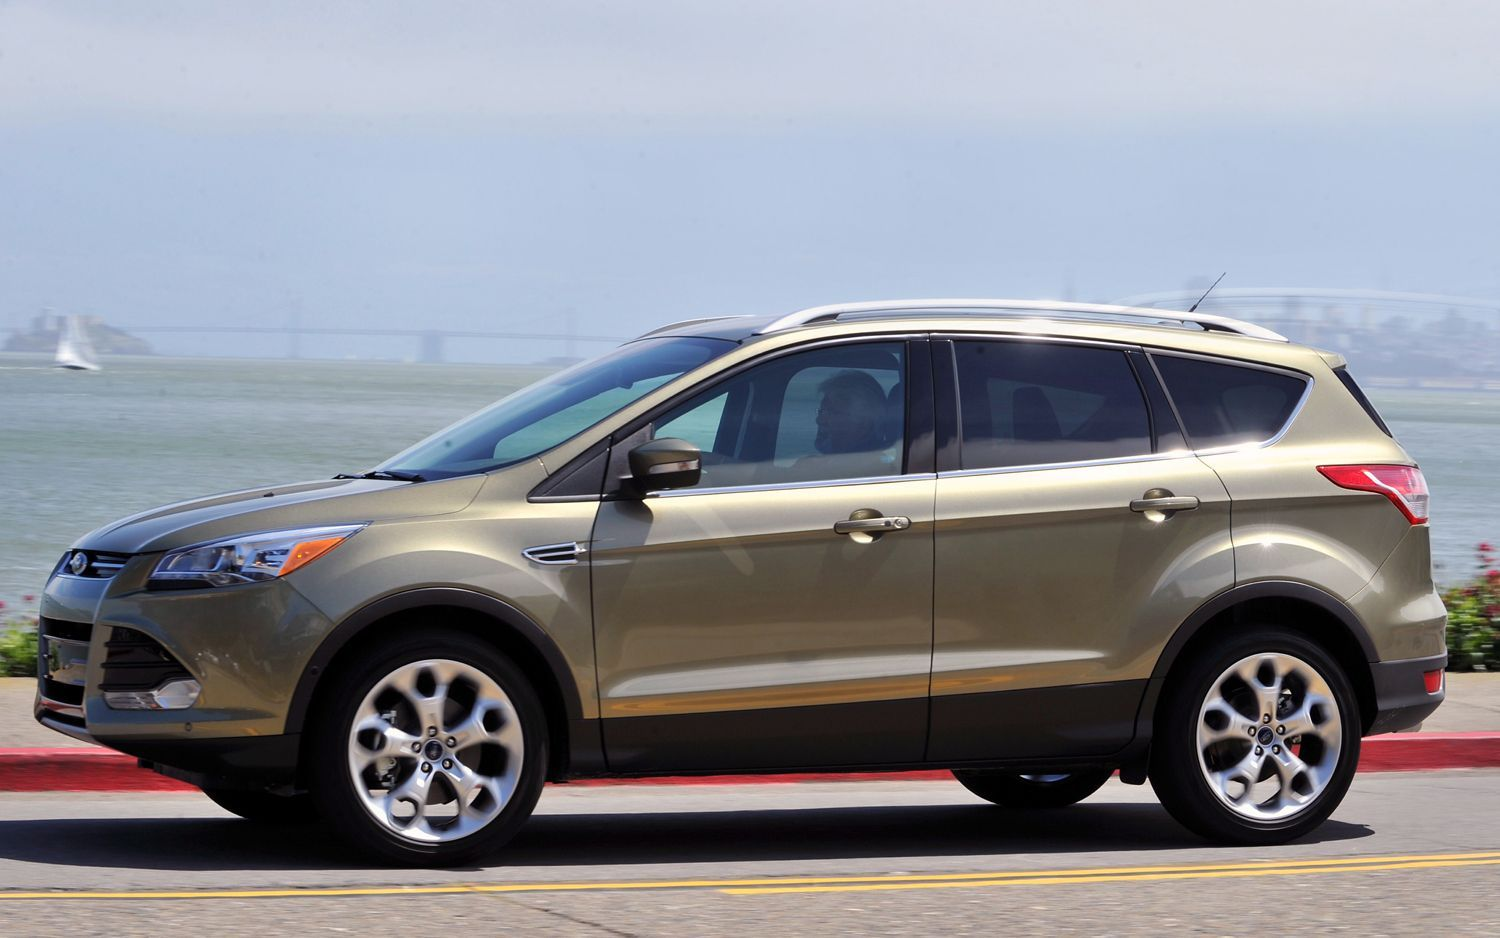 2014 Ford Escape White Nice Look Wallpaper Ford escape